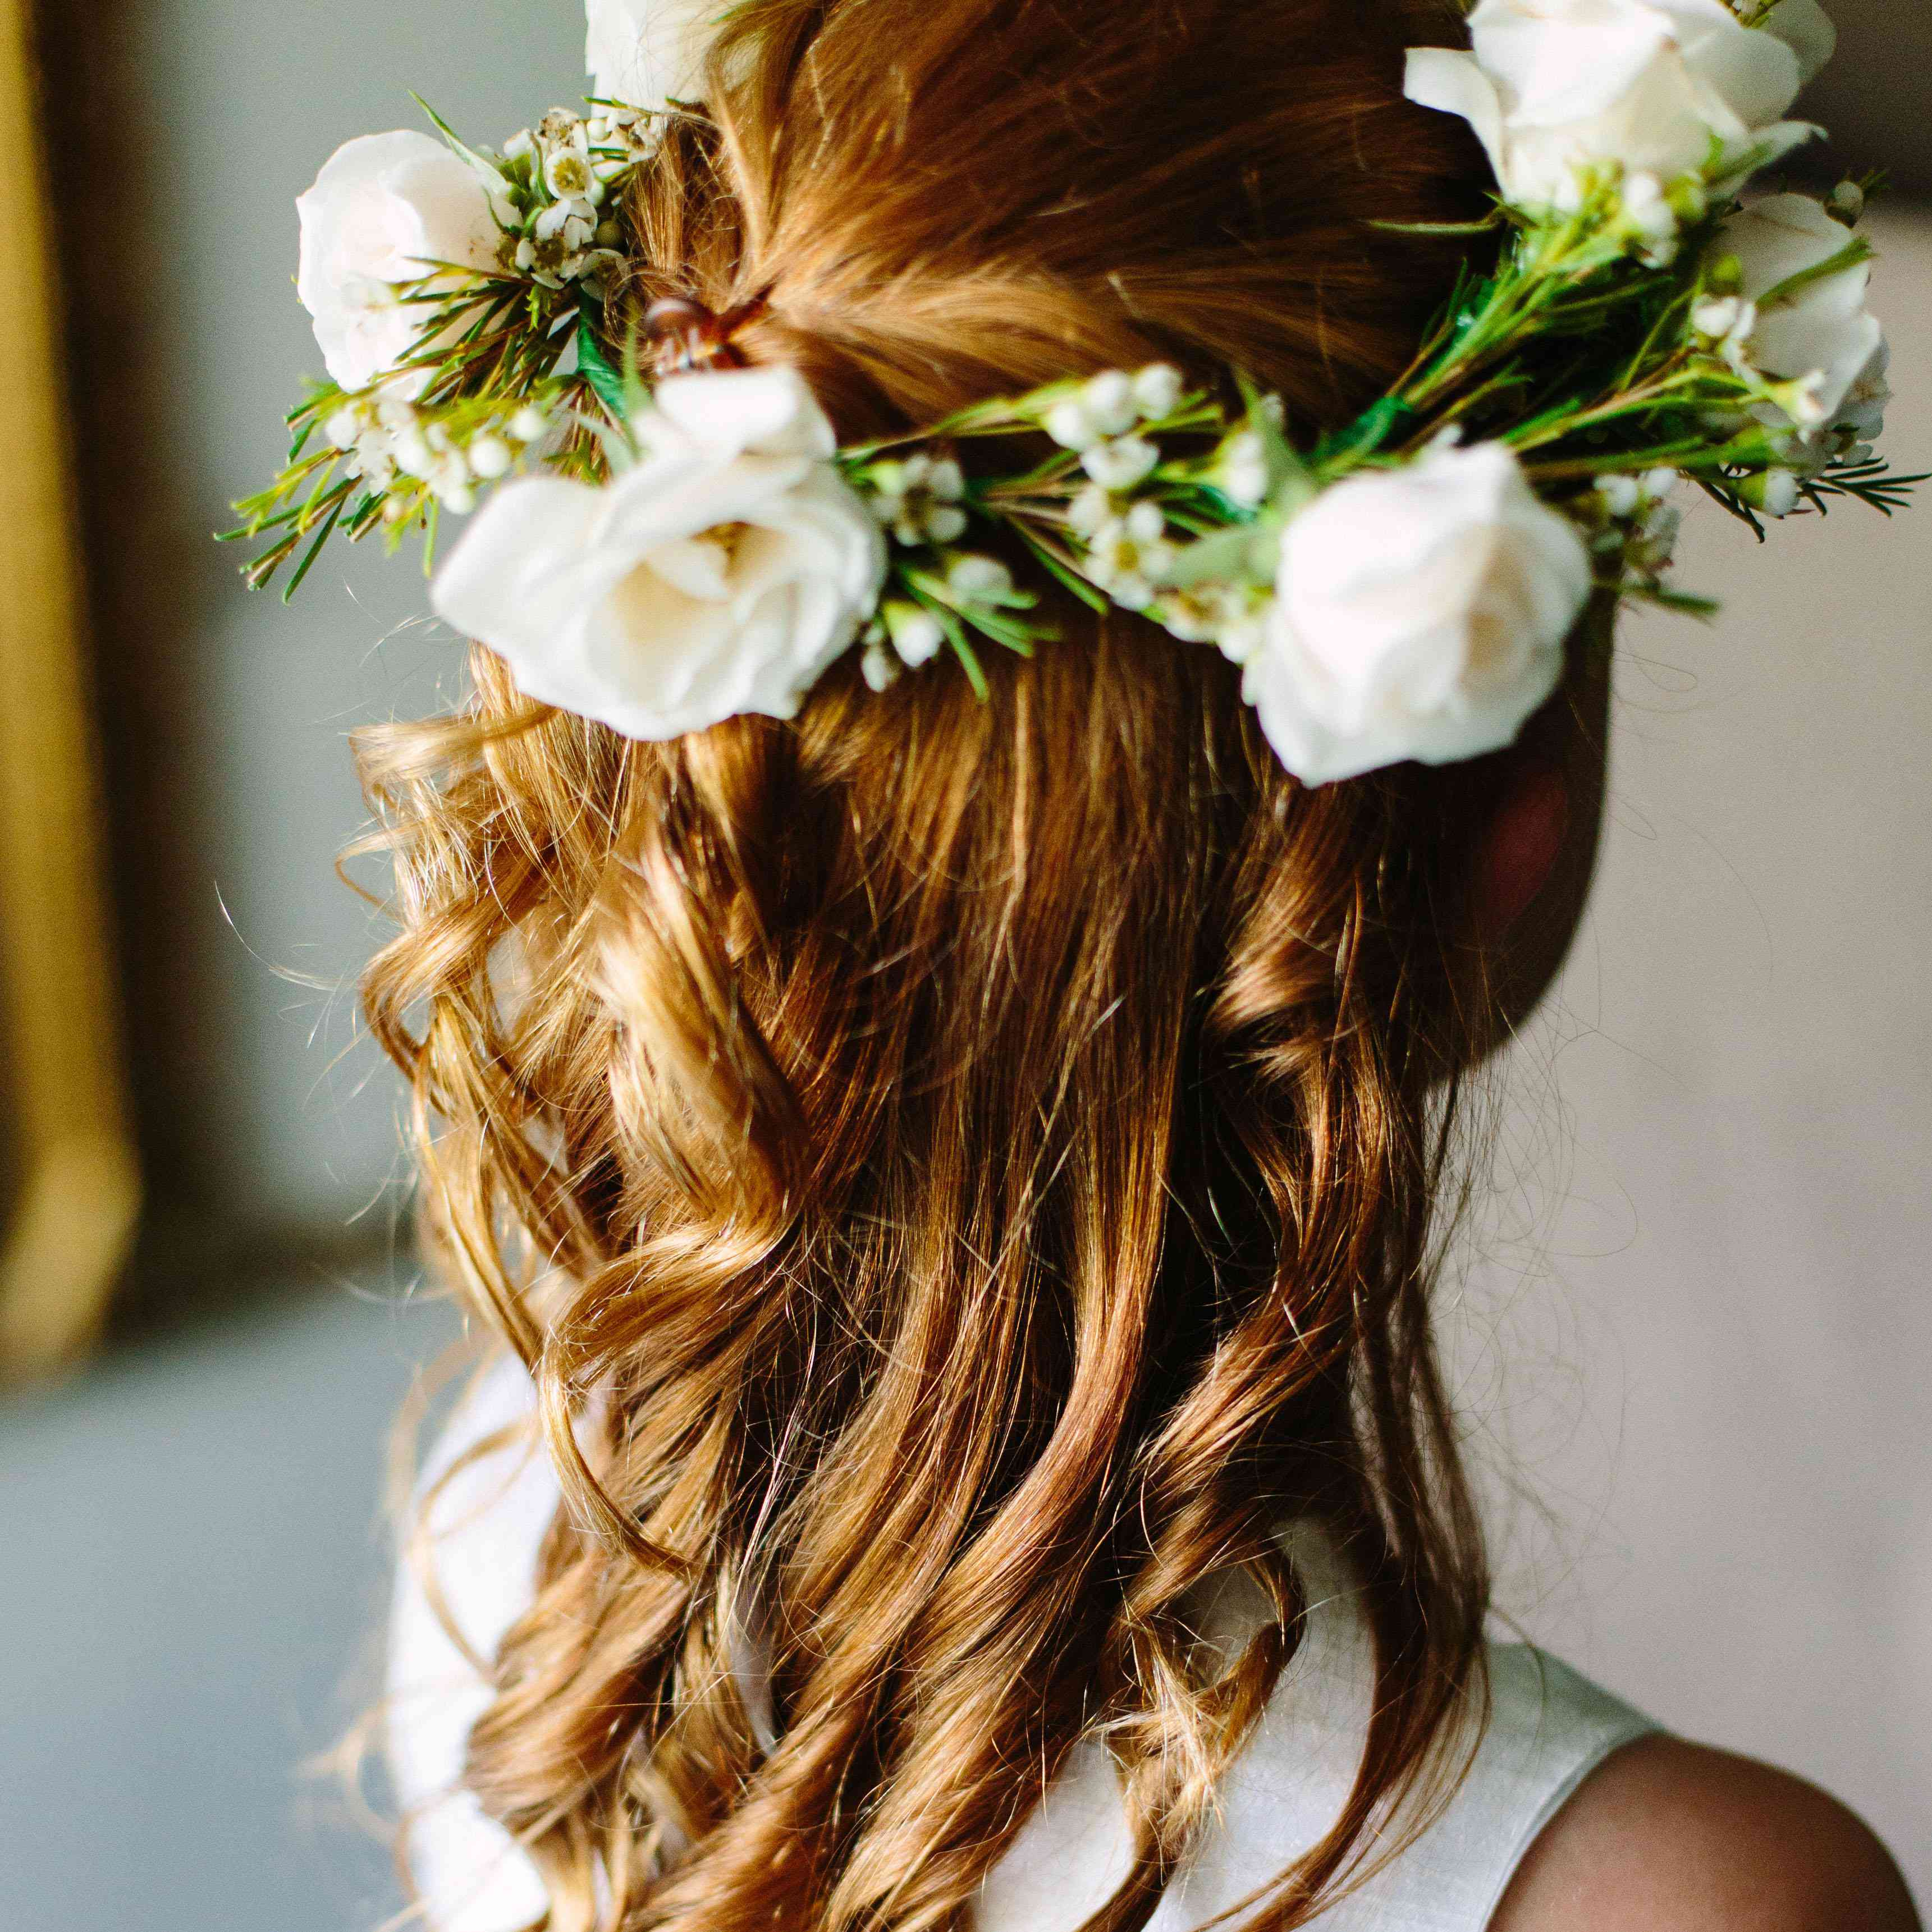 An Easy Diy Flower Crown Tutorial That Even Non Boho Brides